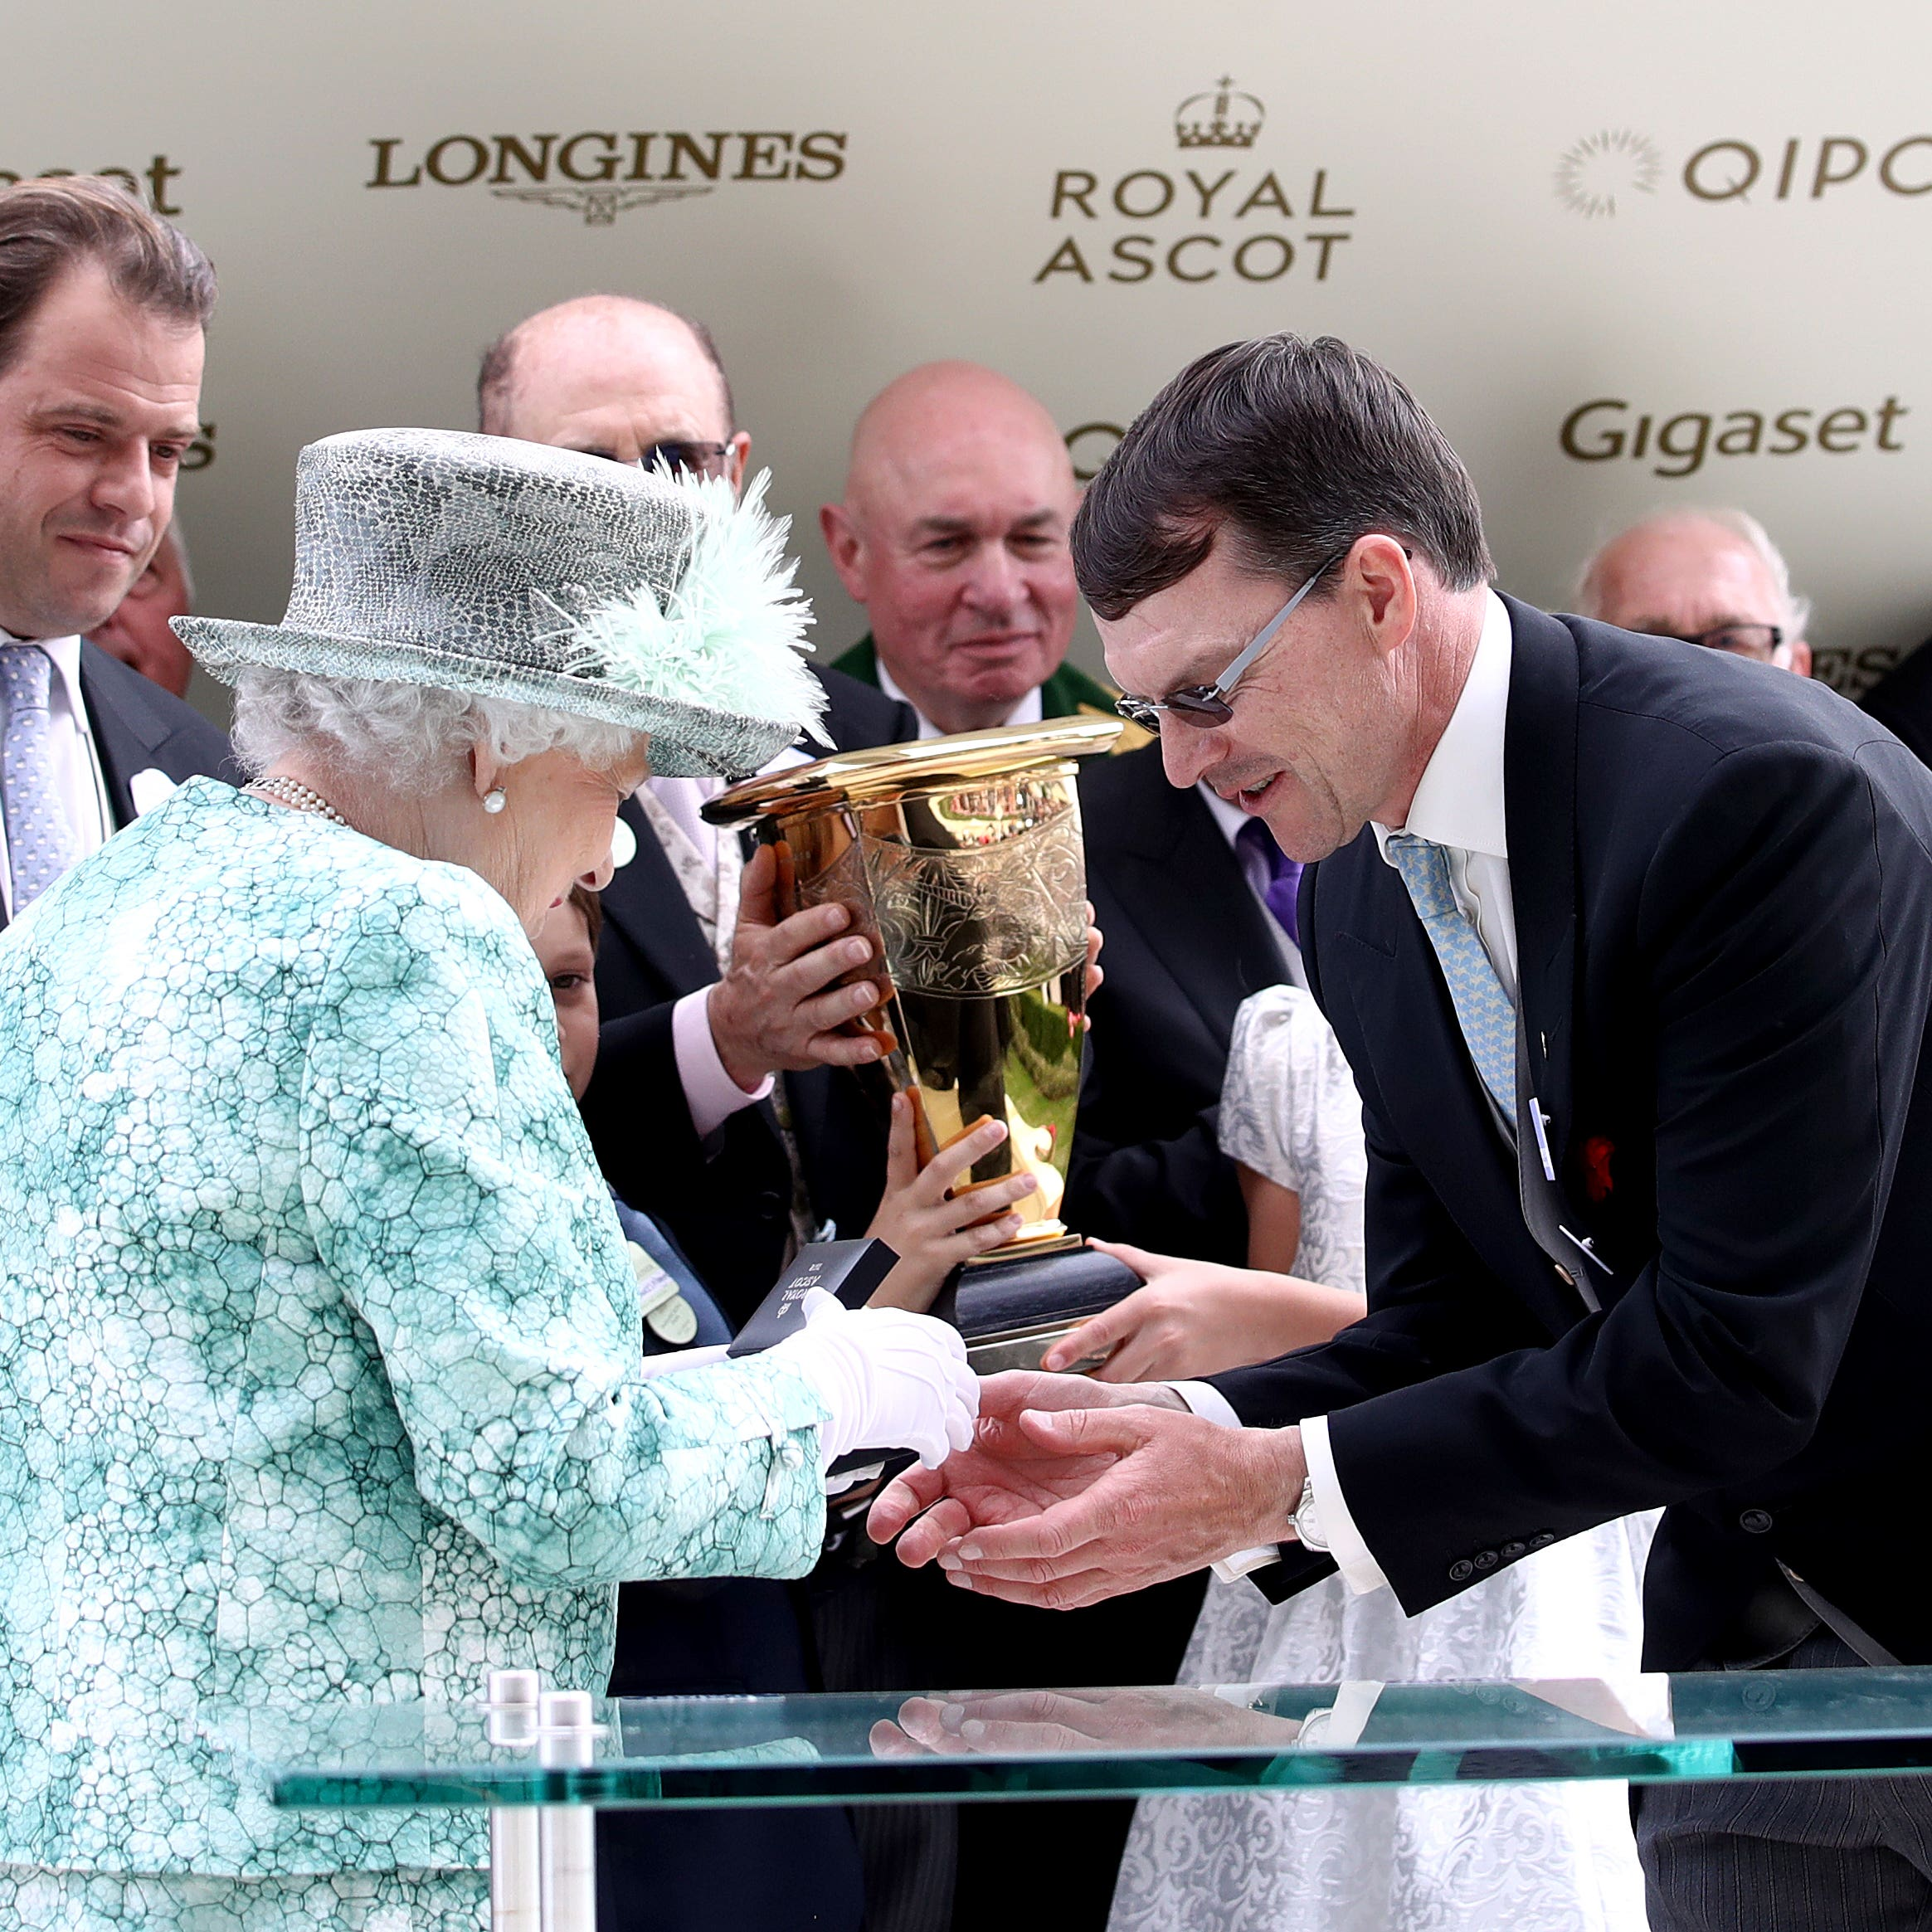 The Queen presents a momento to Aidan O'Brien after Merchant Navy wins the Diamond Jubilee Stakes